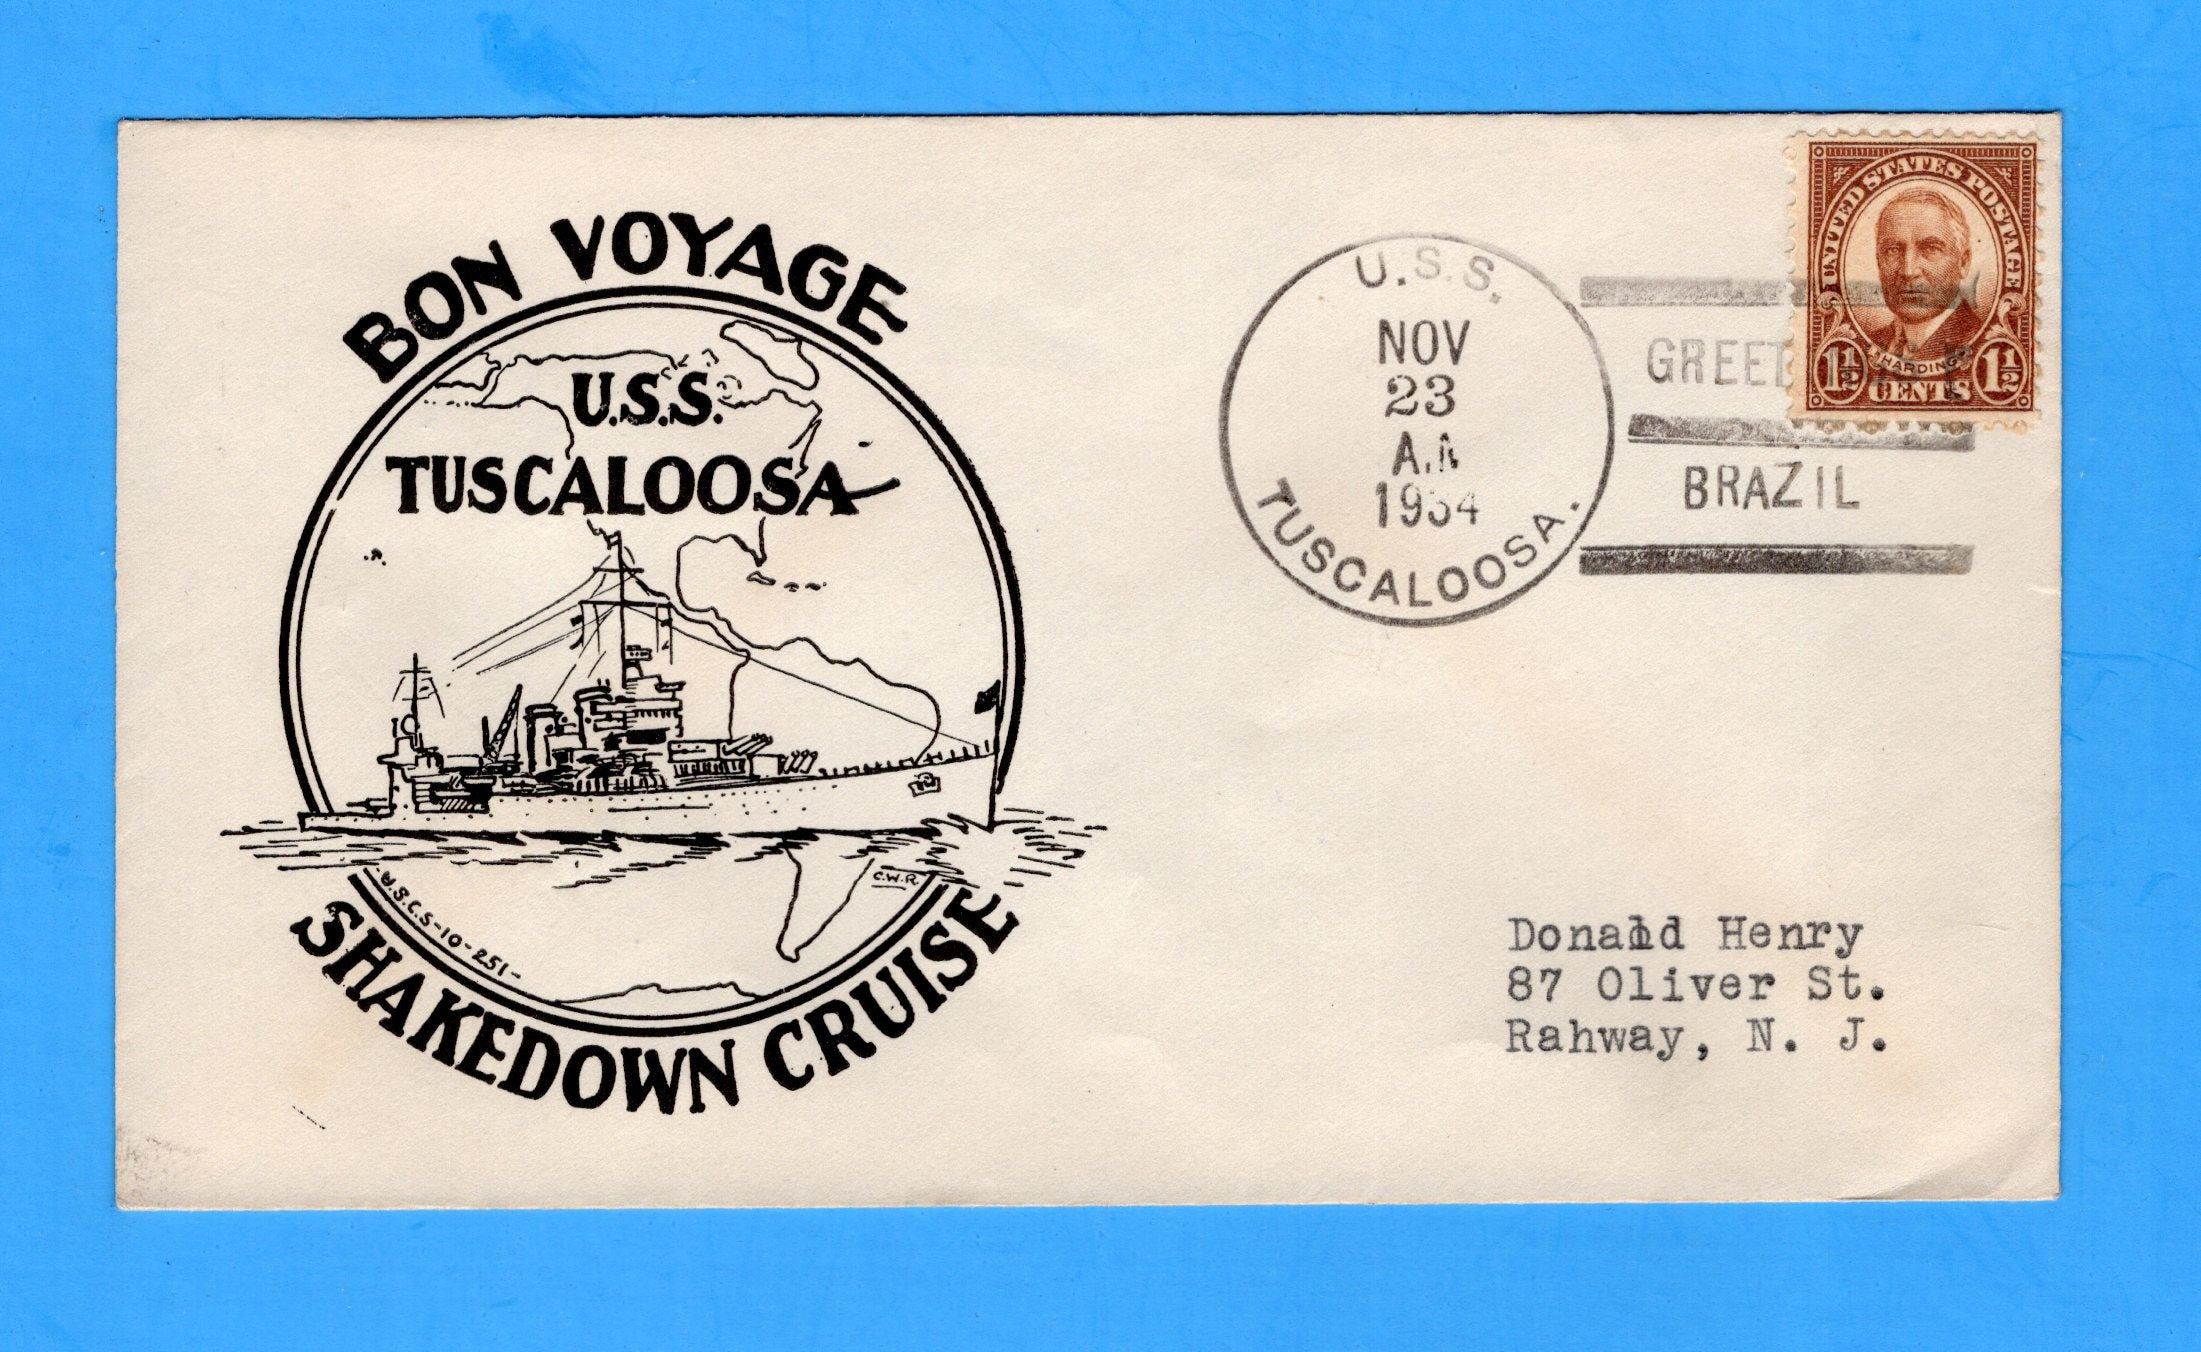 USS Tuscaloosa CA-37 Shakedown Cruise Greetings Brazil November 23, 1934